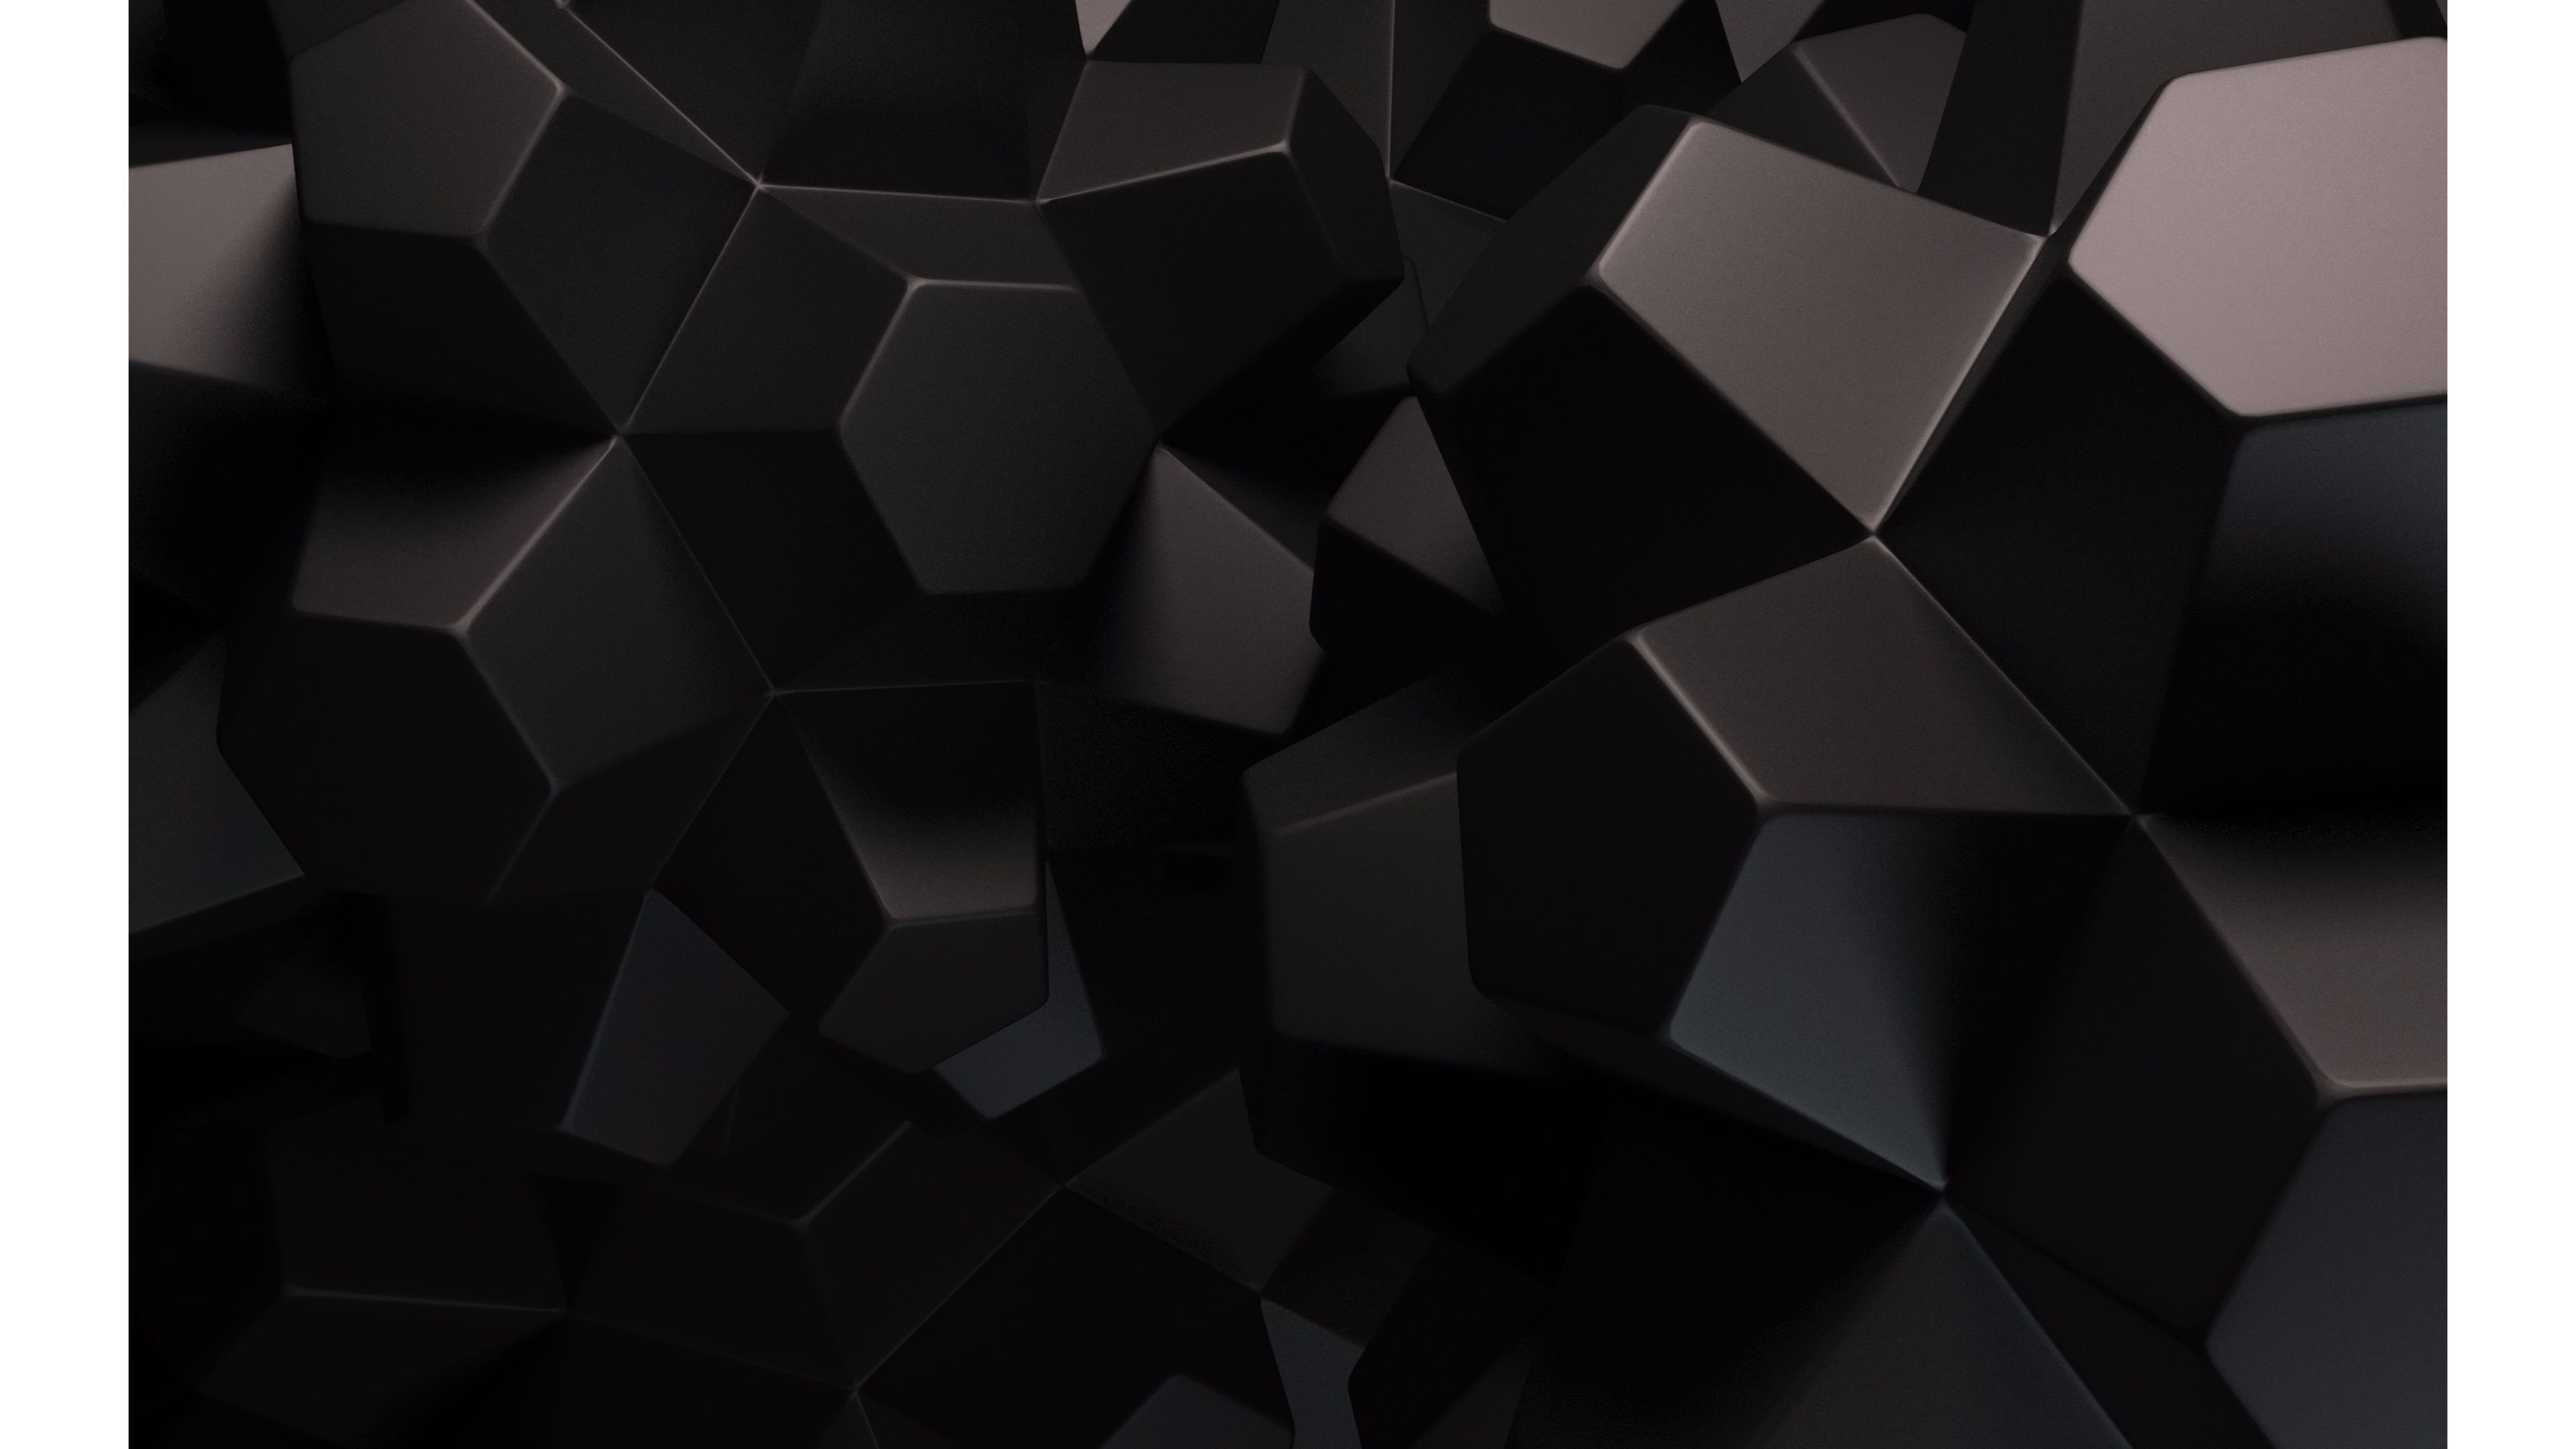 4k Black Abstract Wallpapers Top Free 4k Black Abstract Backgrounds Wallpaperaccess